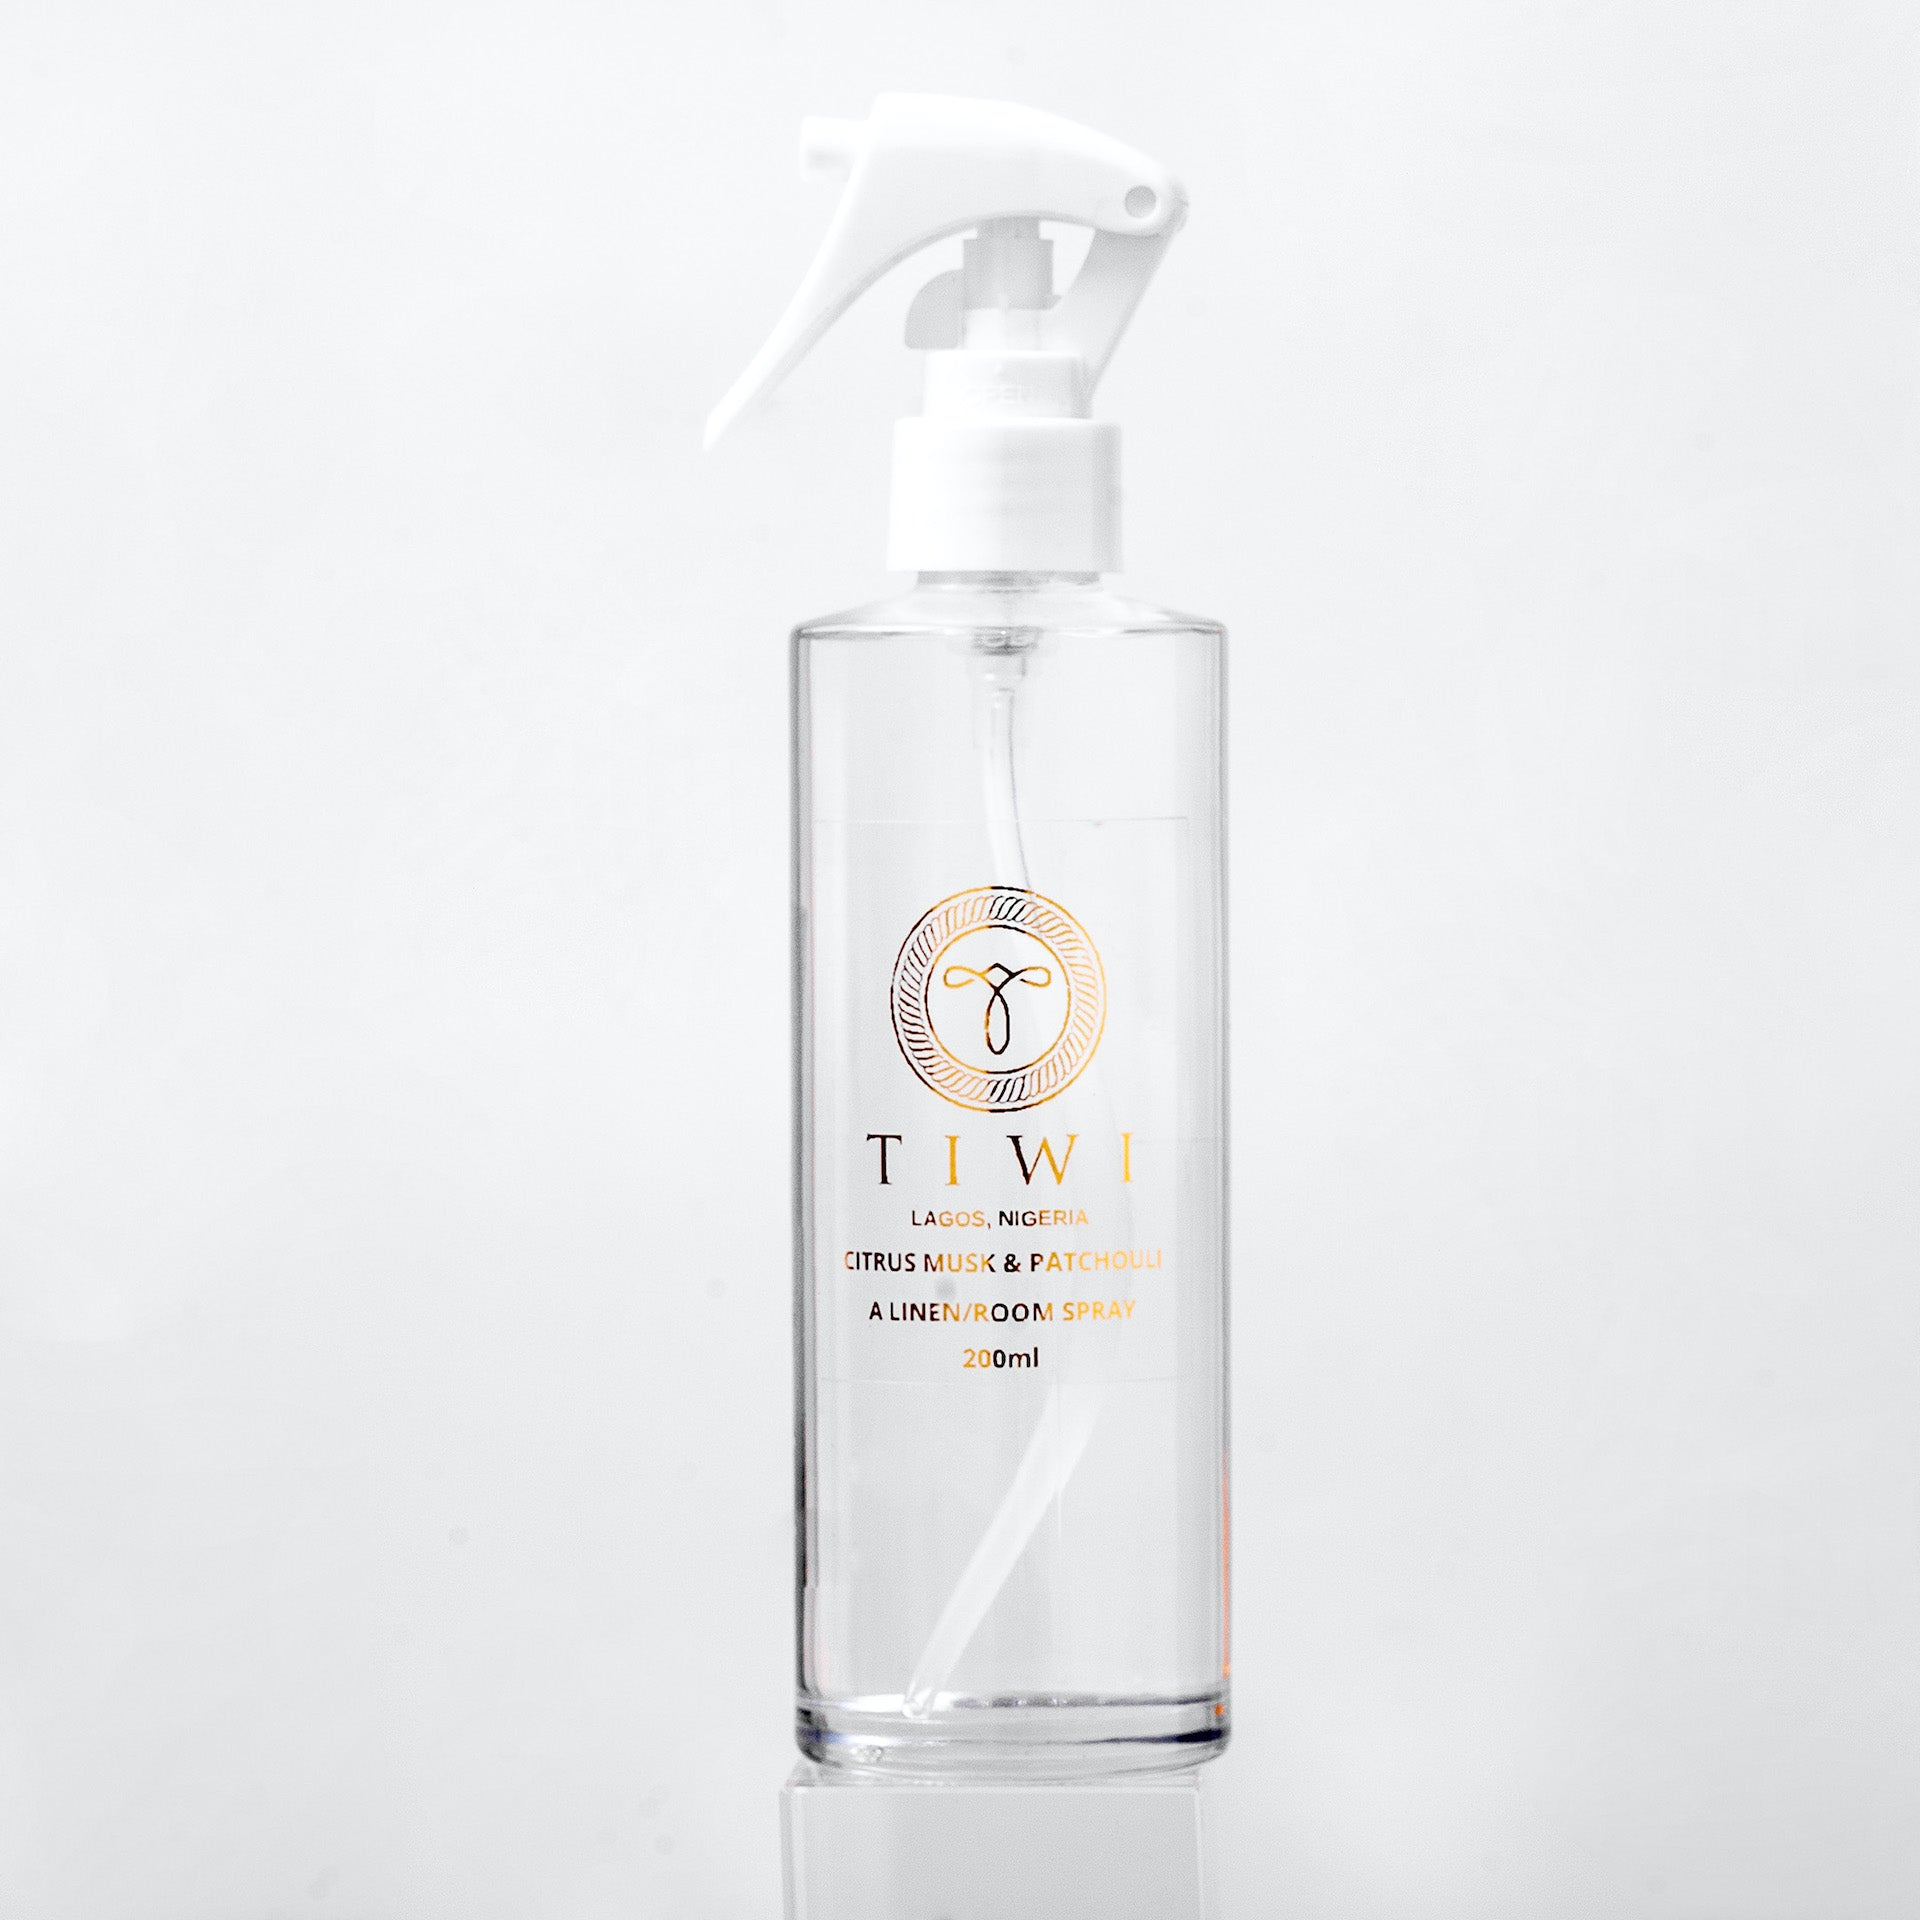 TIWI Citrus Musk & Patchouli Linen/Room Spray